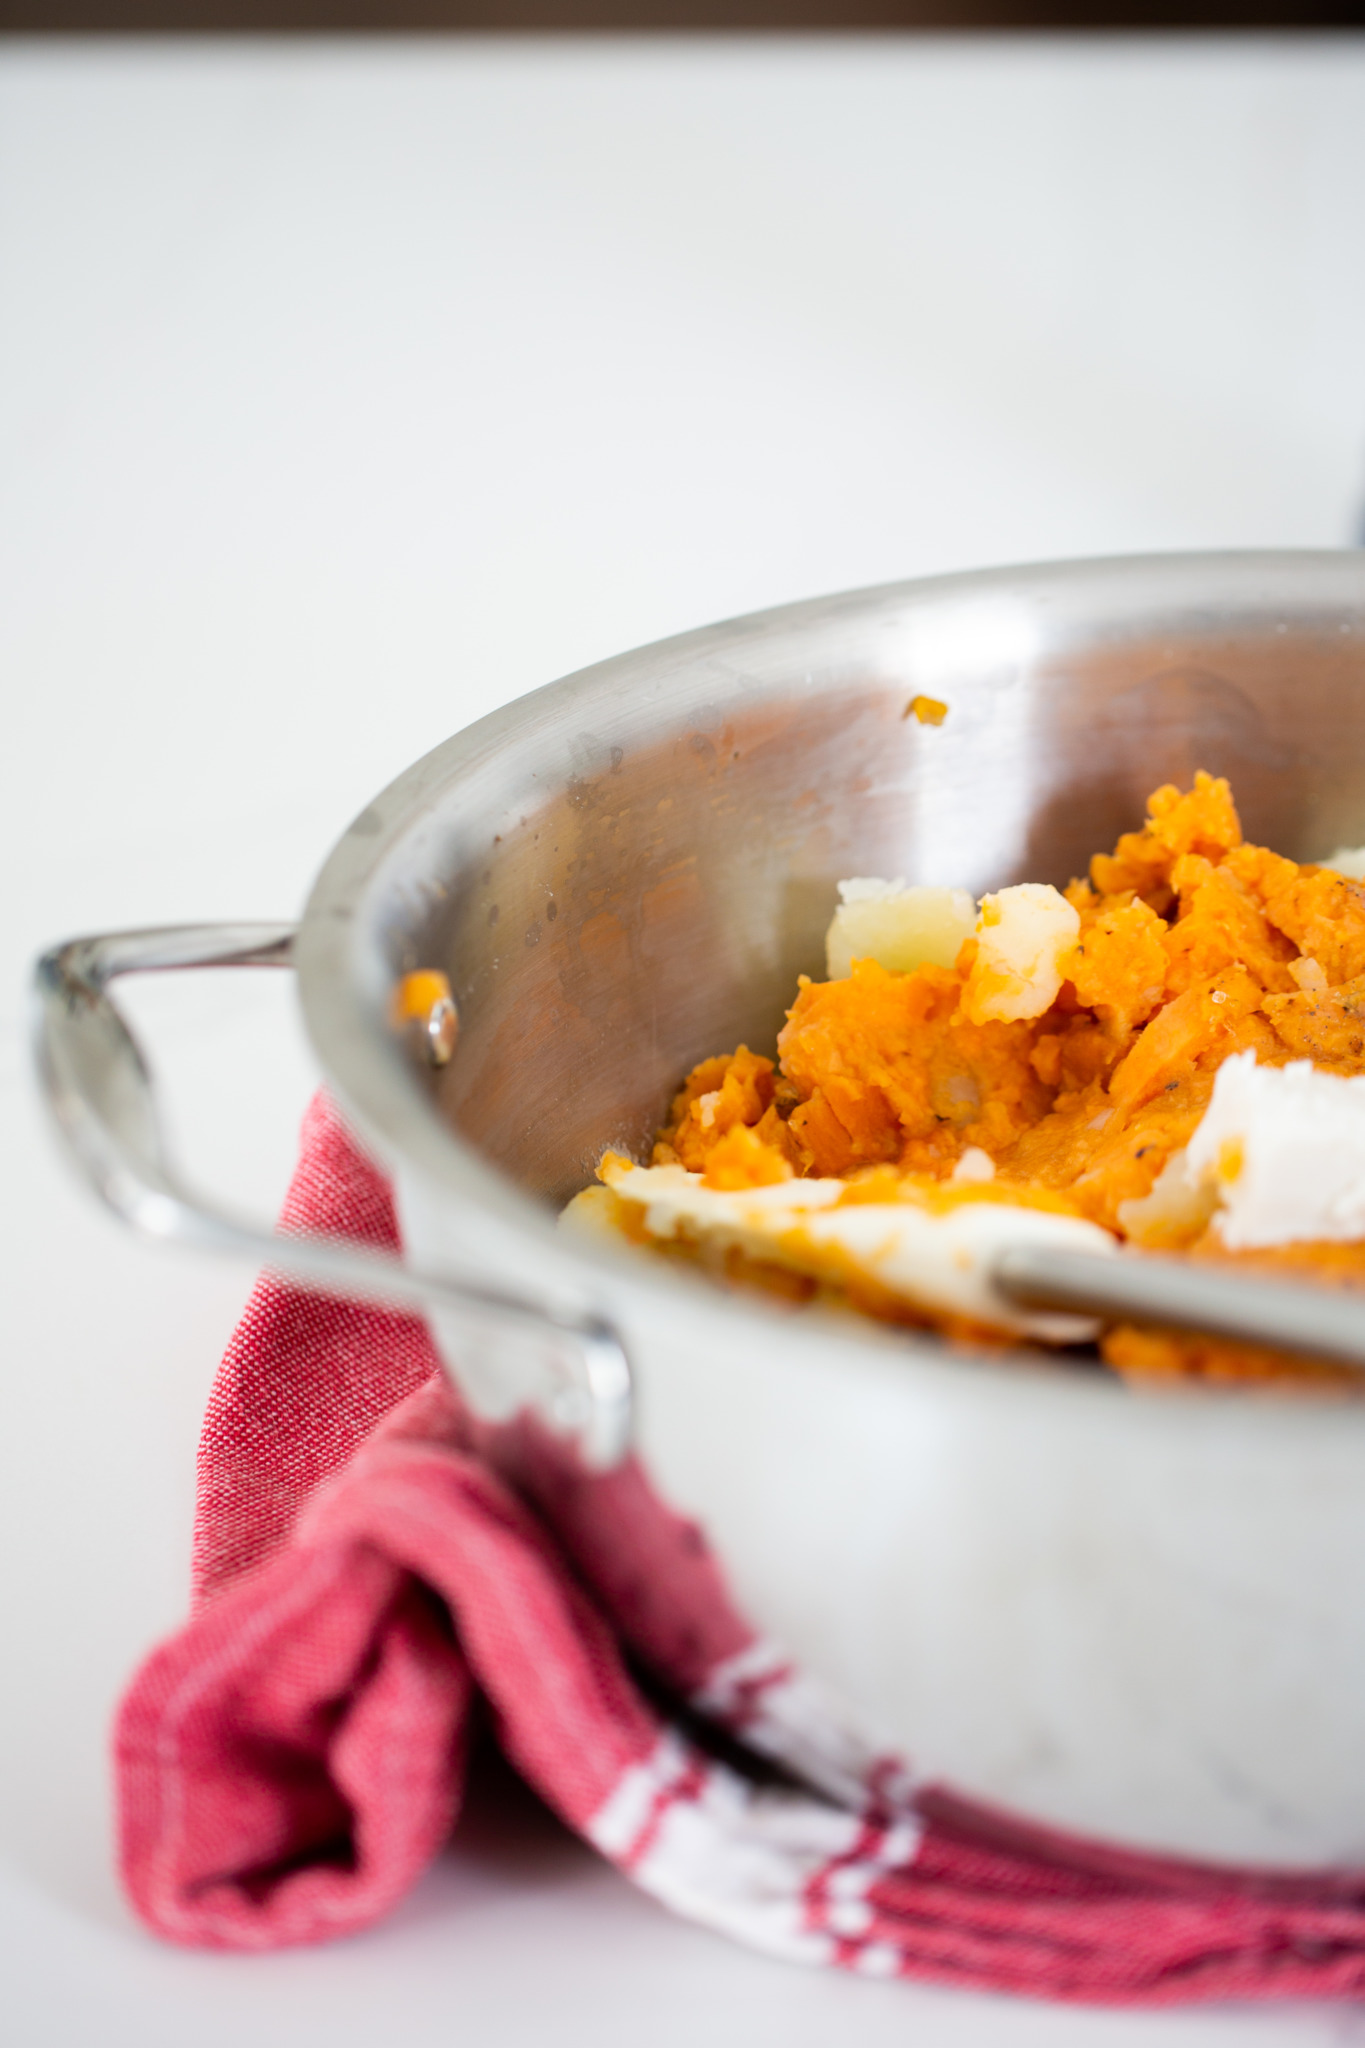 mashed potatoes and sweet potatoes in a pot